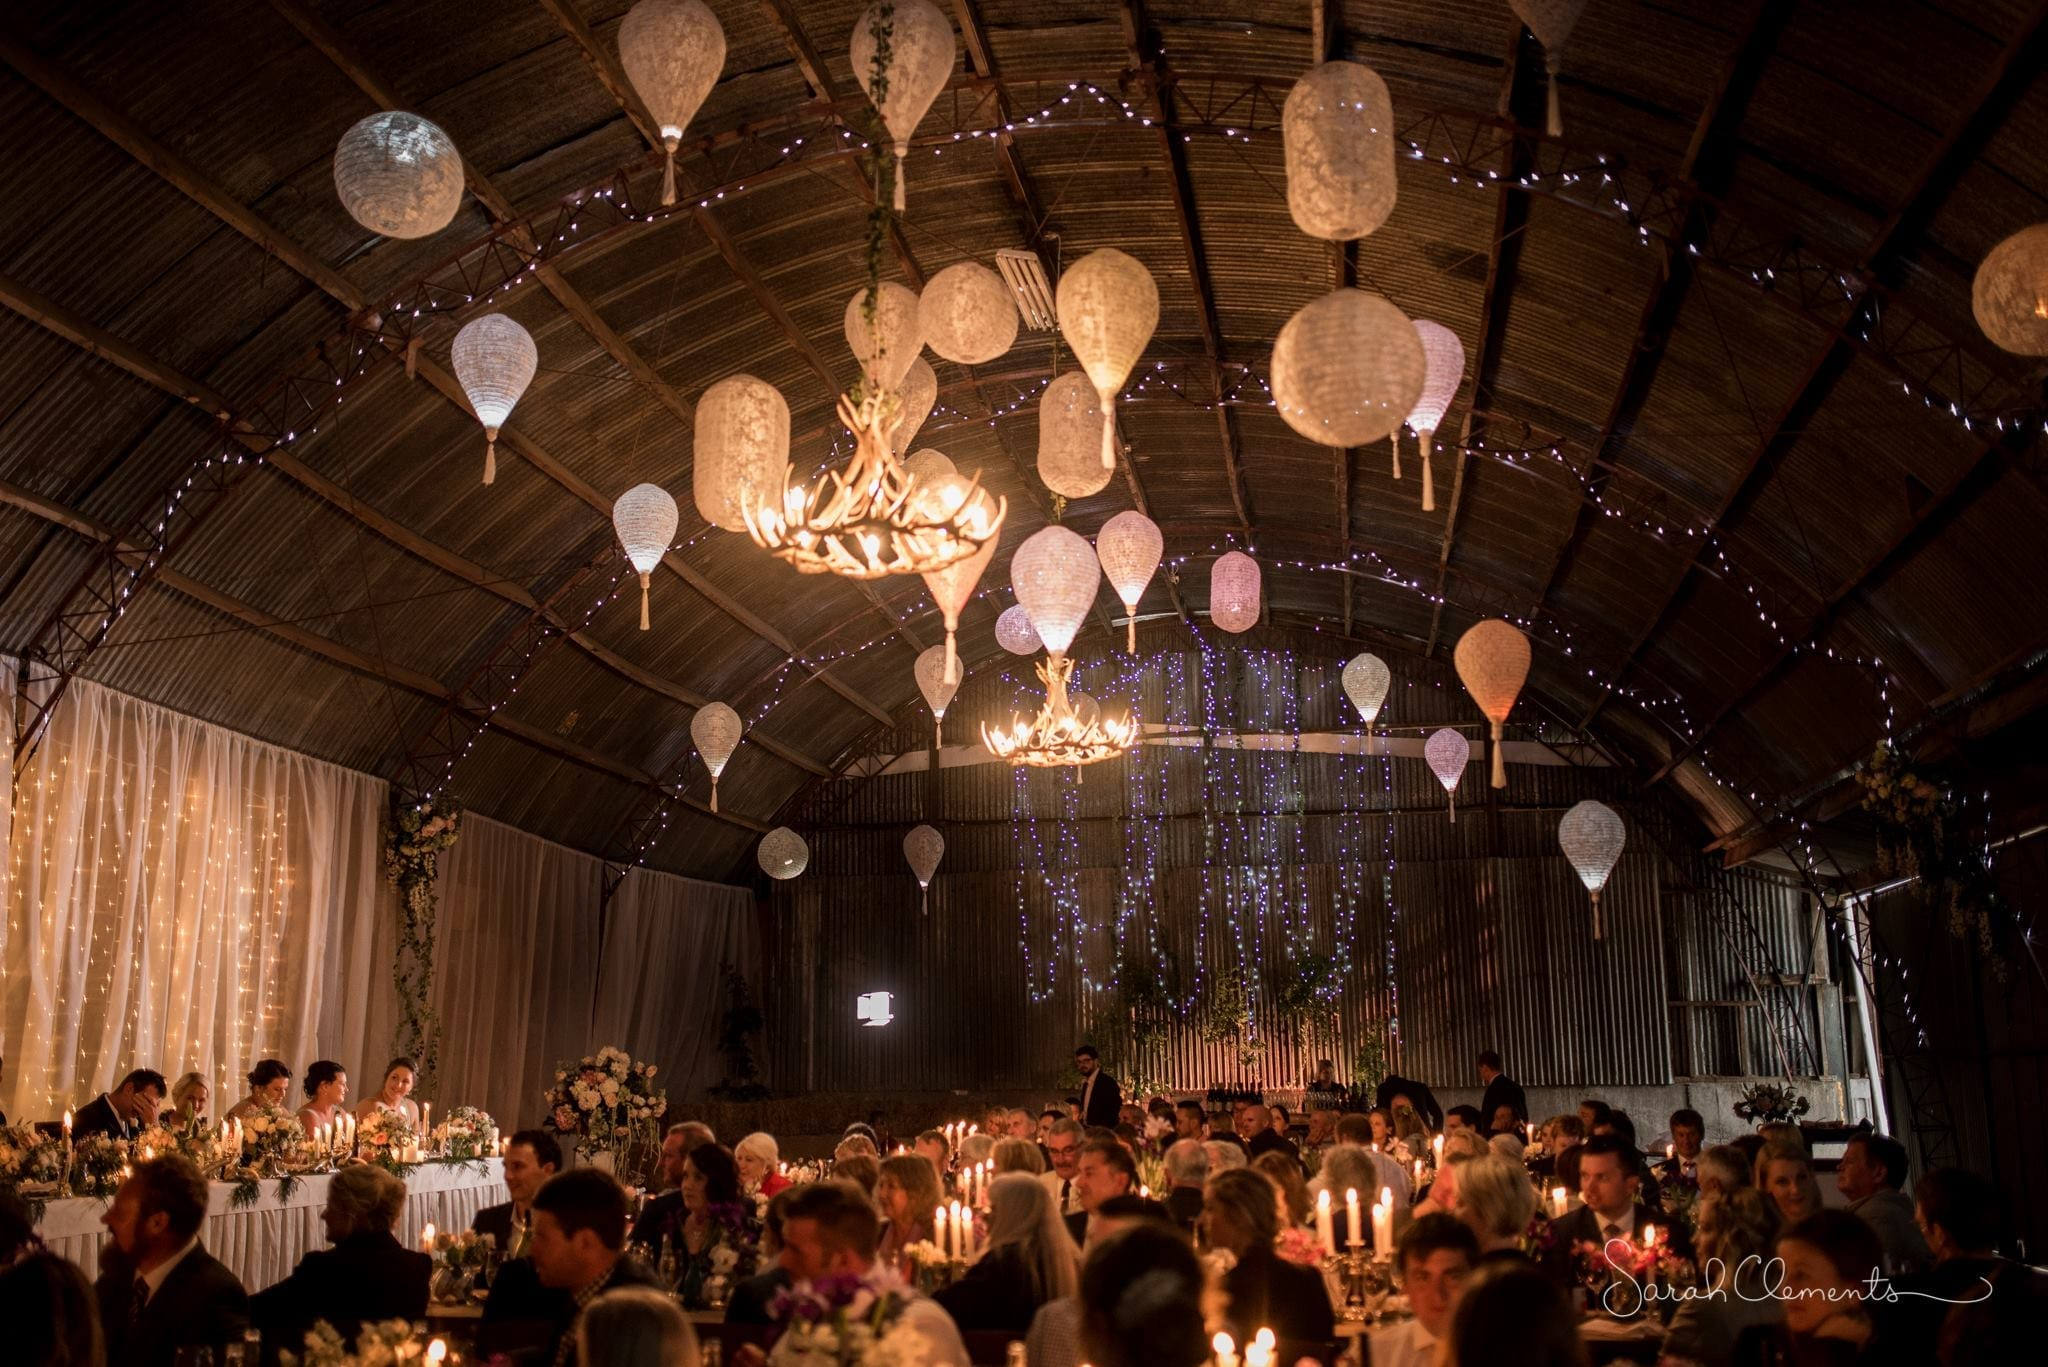 kim chan events | lace lanterns and fairy lights at bar wedding